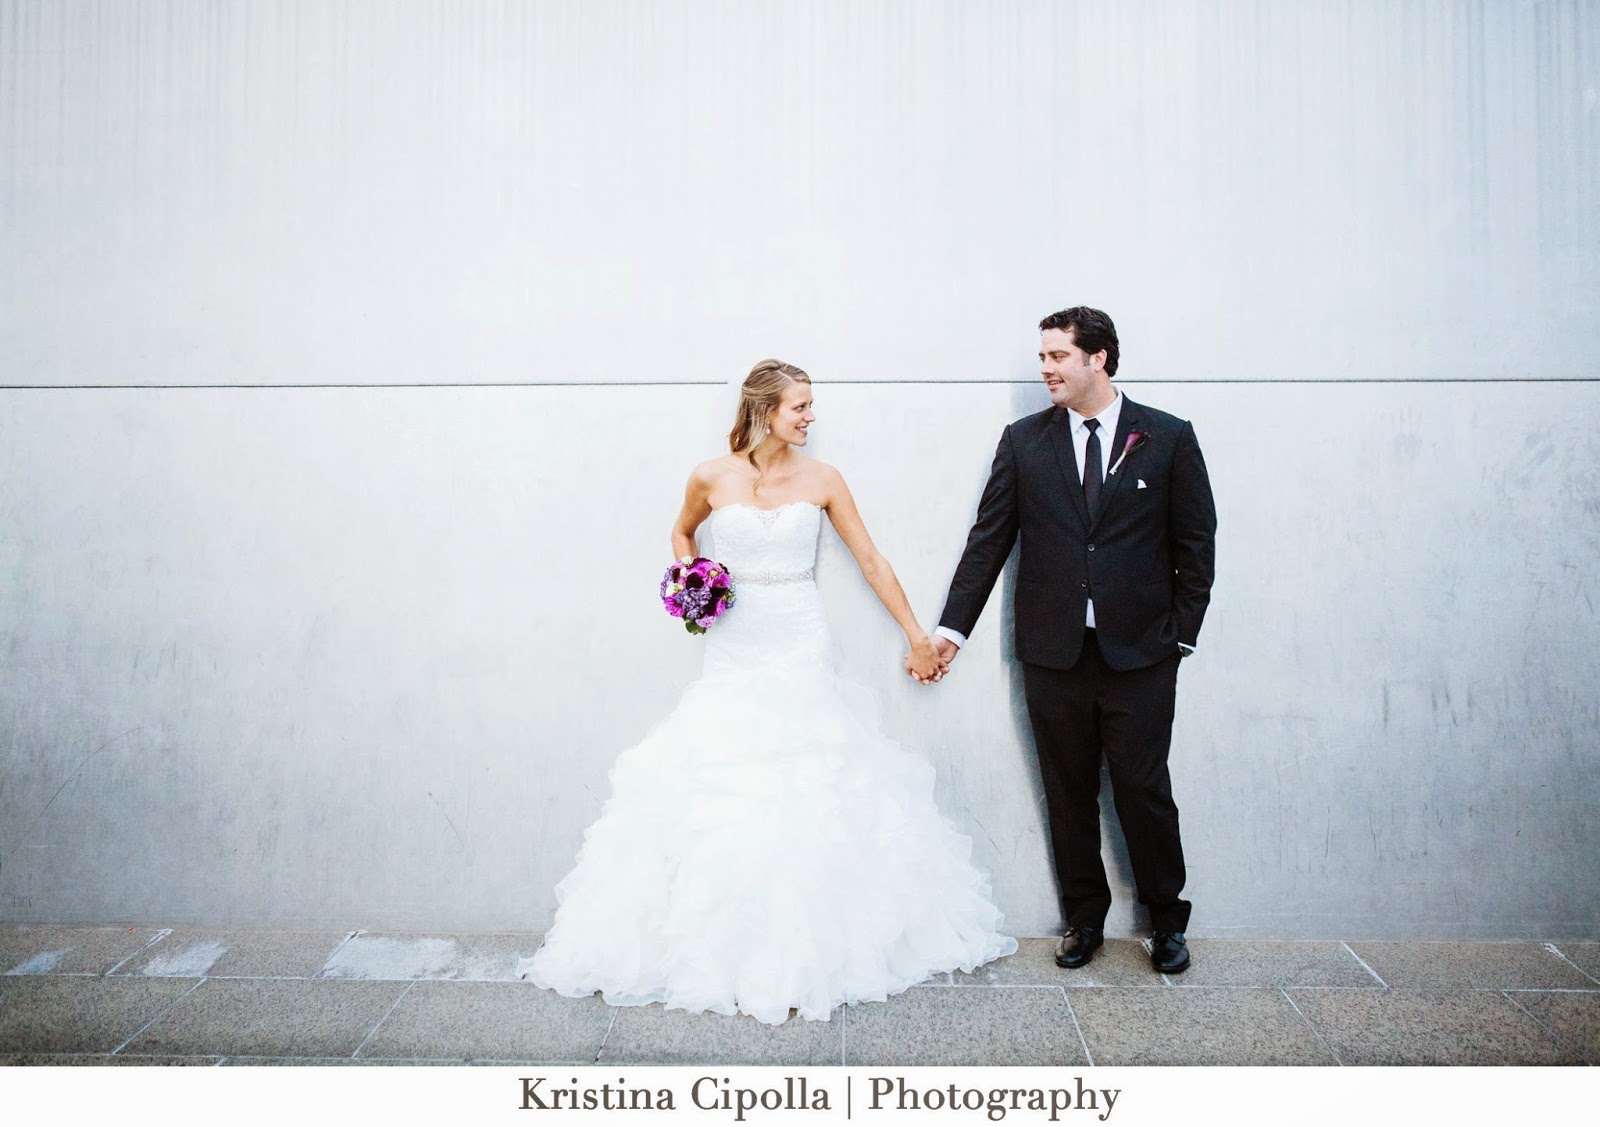 Kristina Cipolla Photography, St. Louis Wedding Photographer